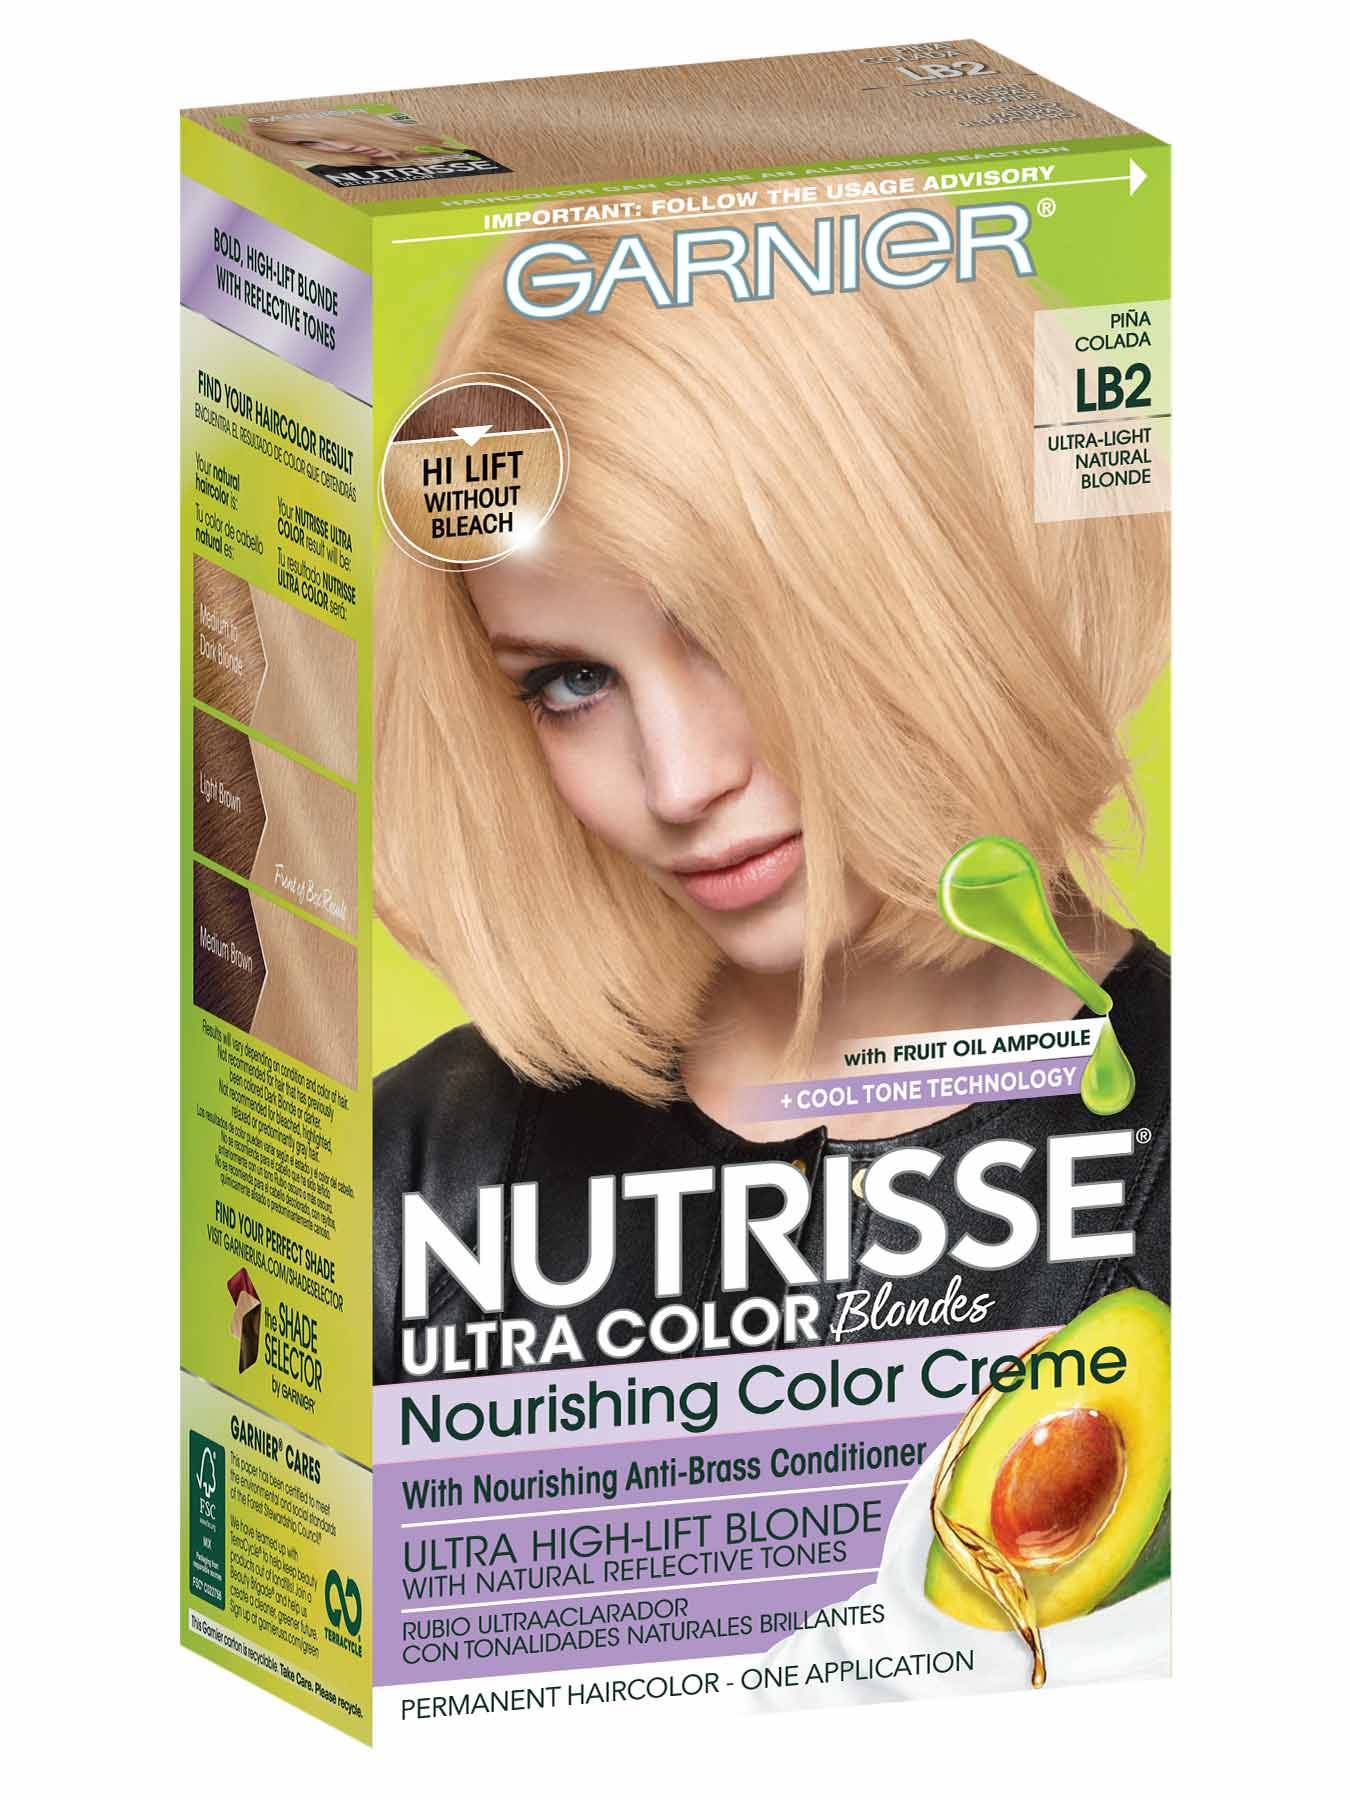 Nutrisse Ultra-Color - Ultra Light Natural Blonde Hair Color - Garnier